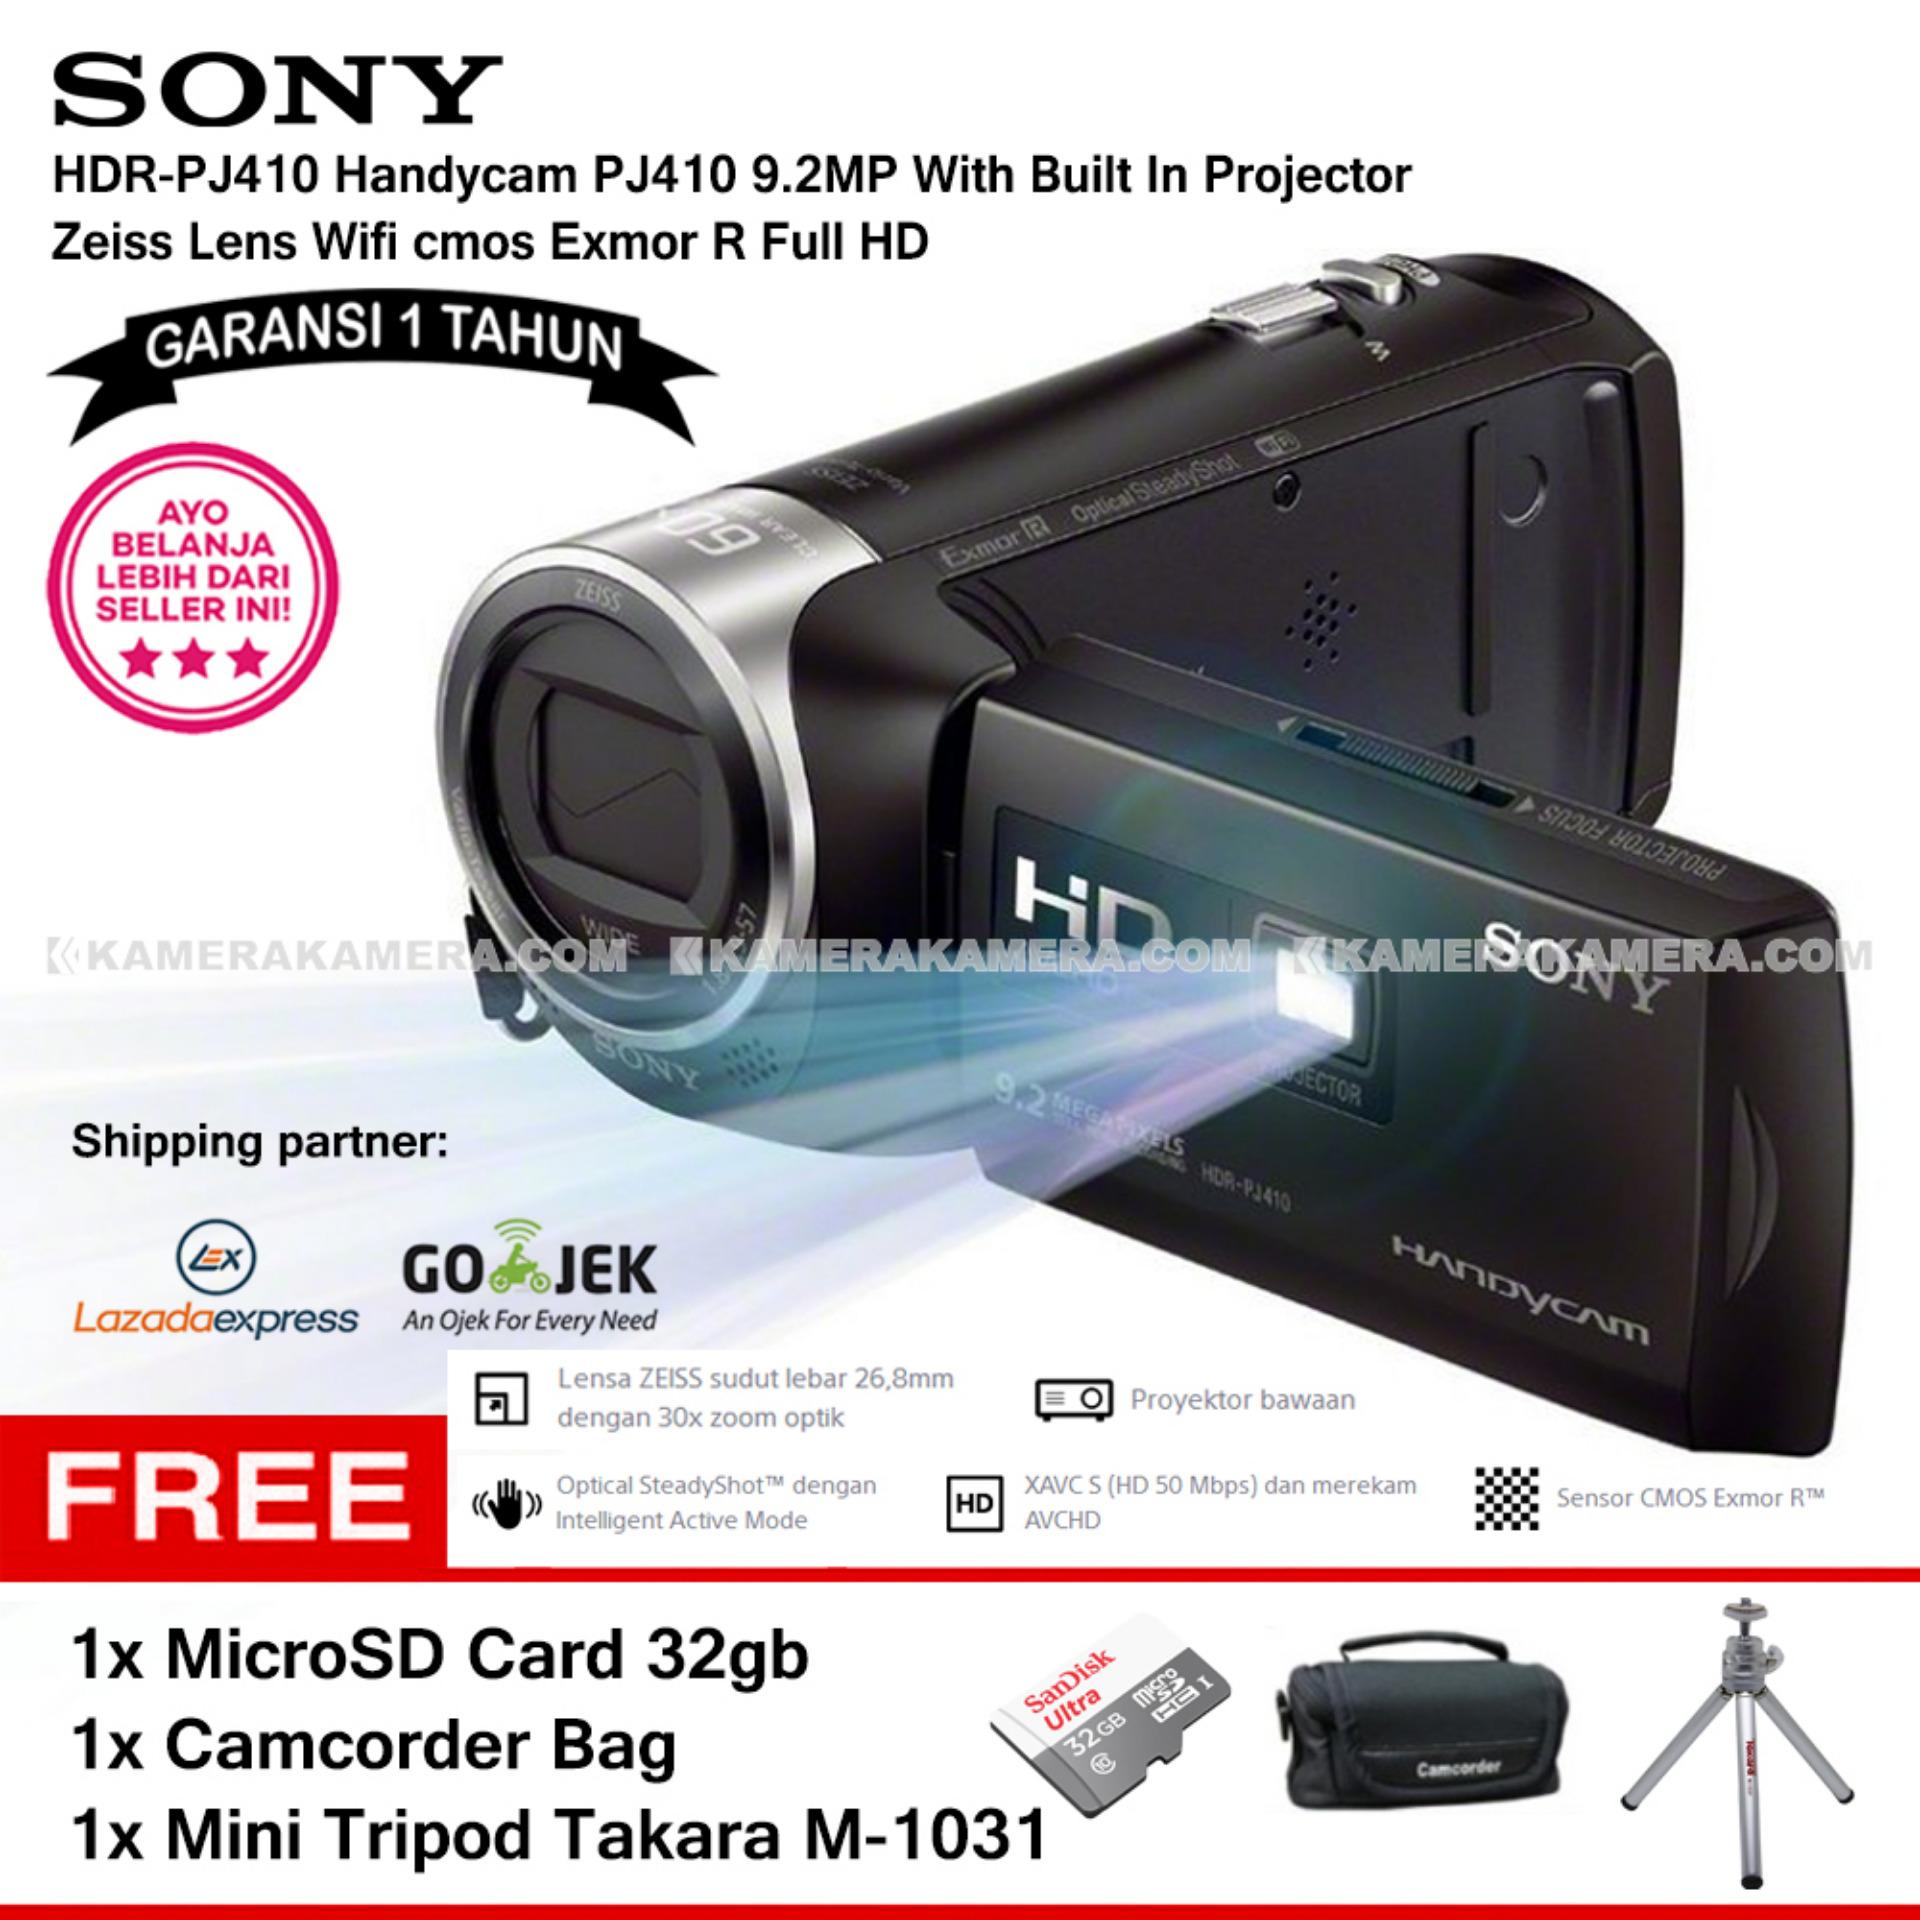 SONY HDR-PJ410 Handycam PJ410 9.2MP With Built In Projector Zeiss Lens Wifi cmos